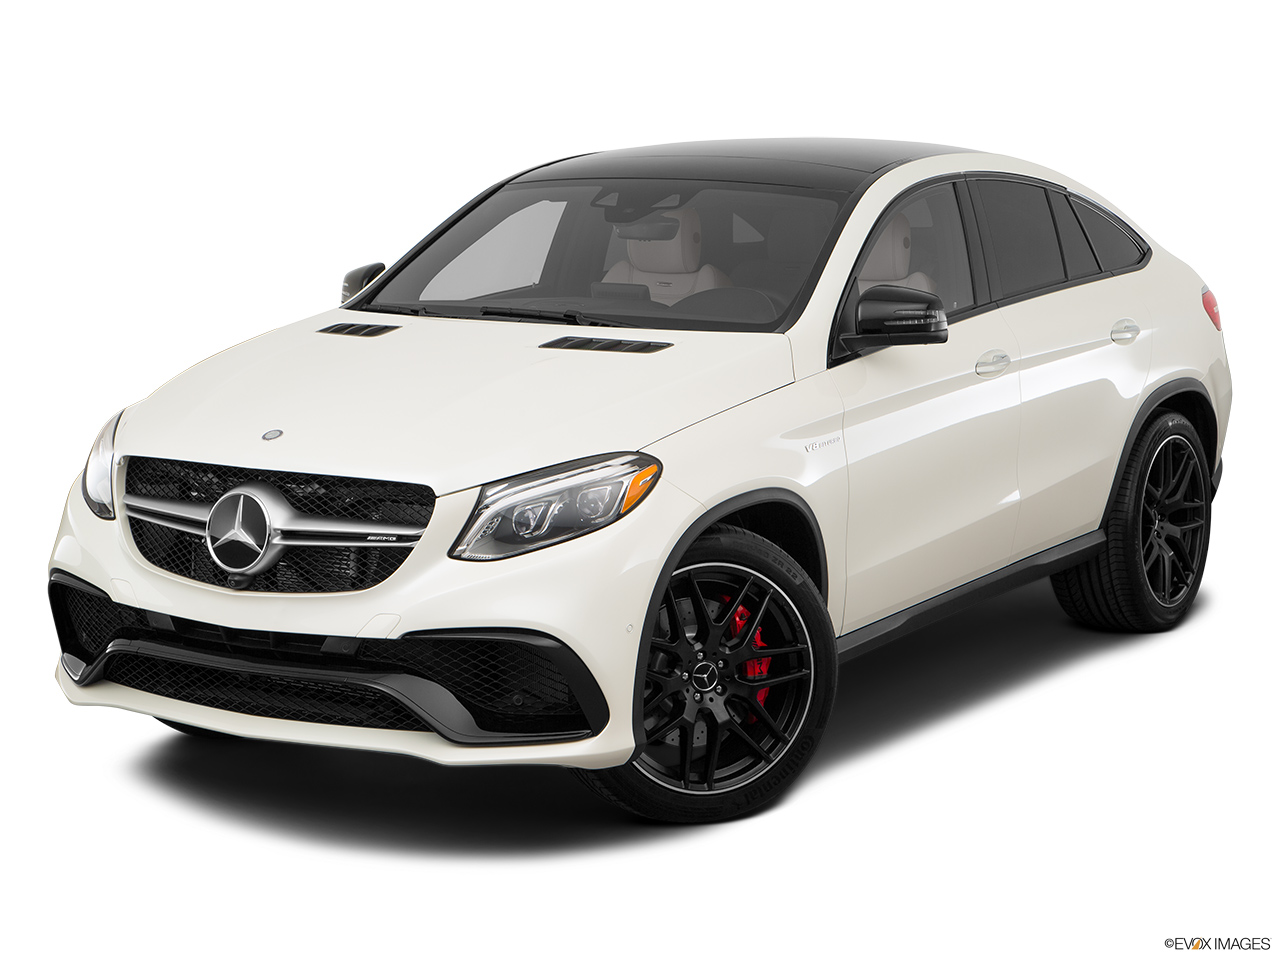 Mercedes benz gle coupe 2017 amg gle 63 4matic in qatar for 2017 amg gle 63 mercedes benz